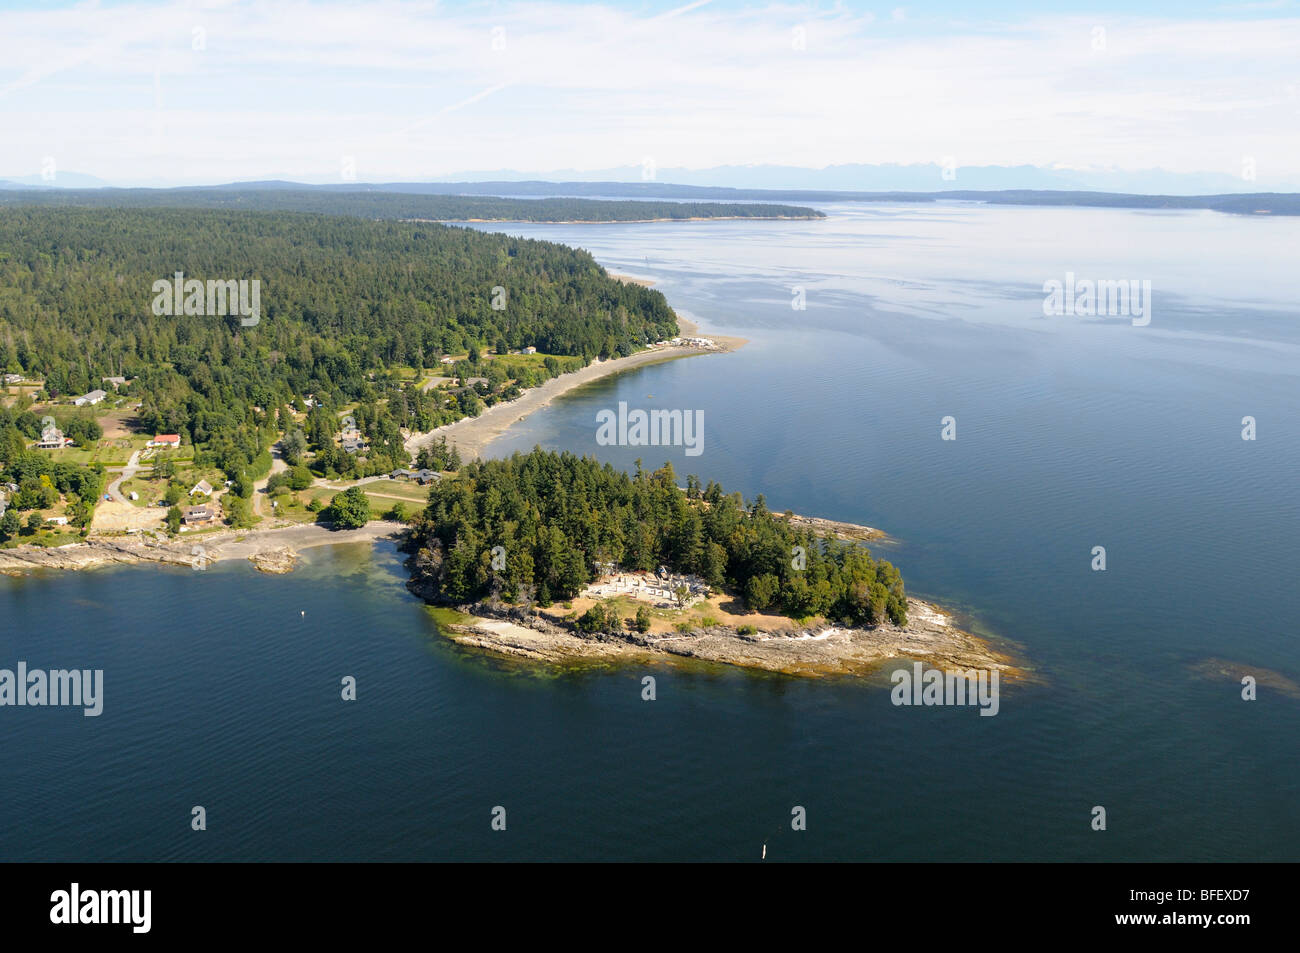 Looking north to Yellow Point, Vancouver Island, British Columbia, Canada. Stock Photo